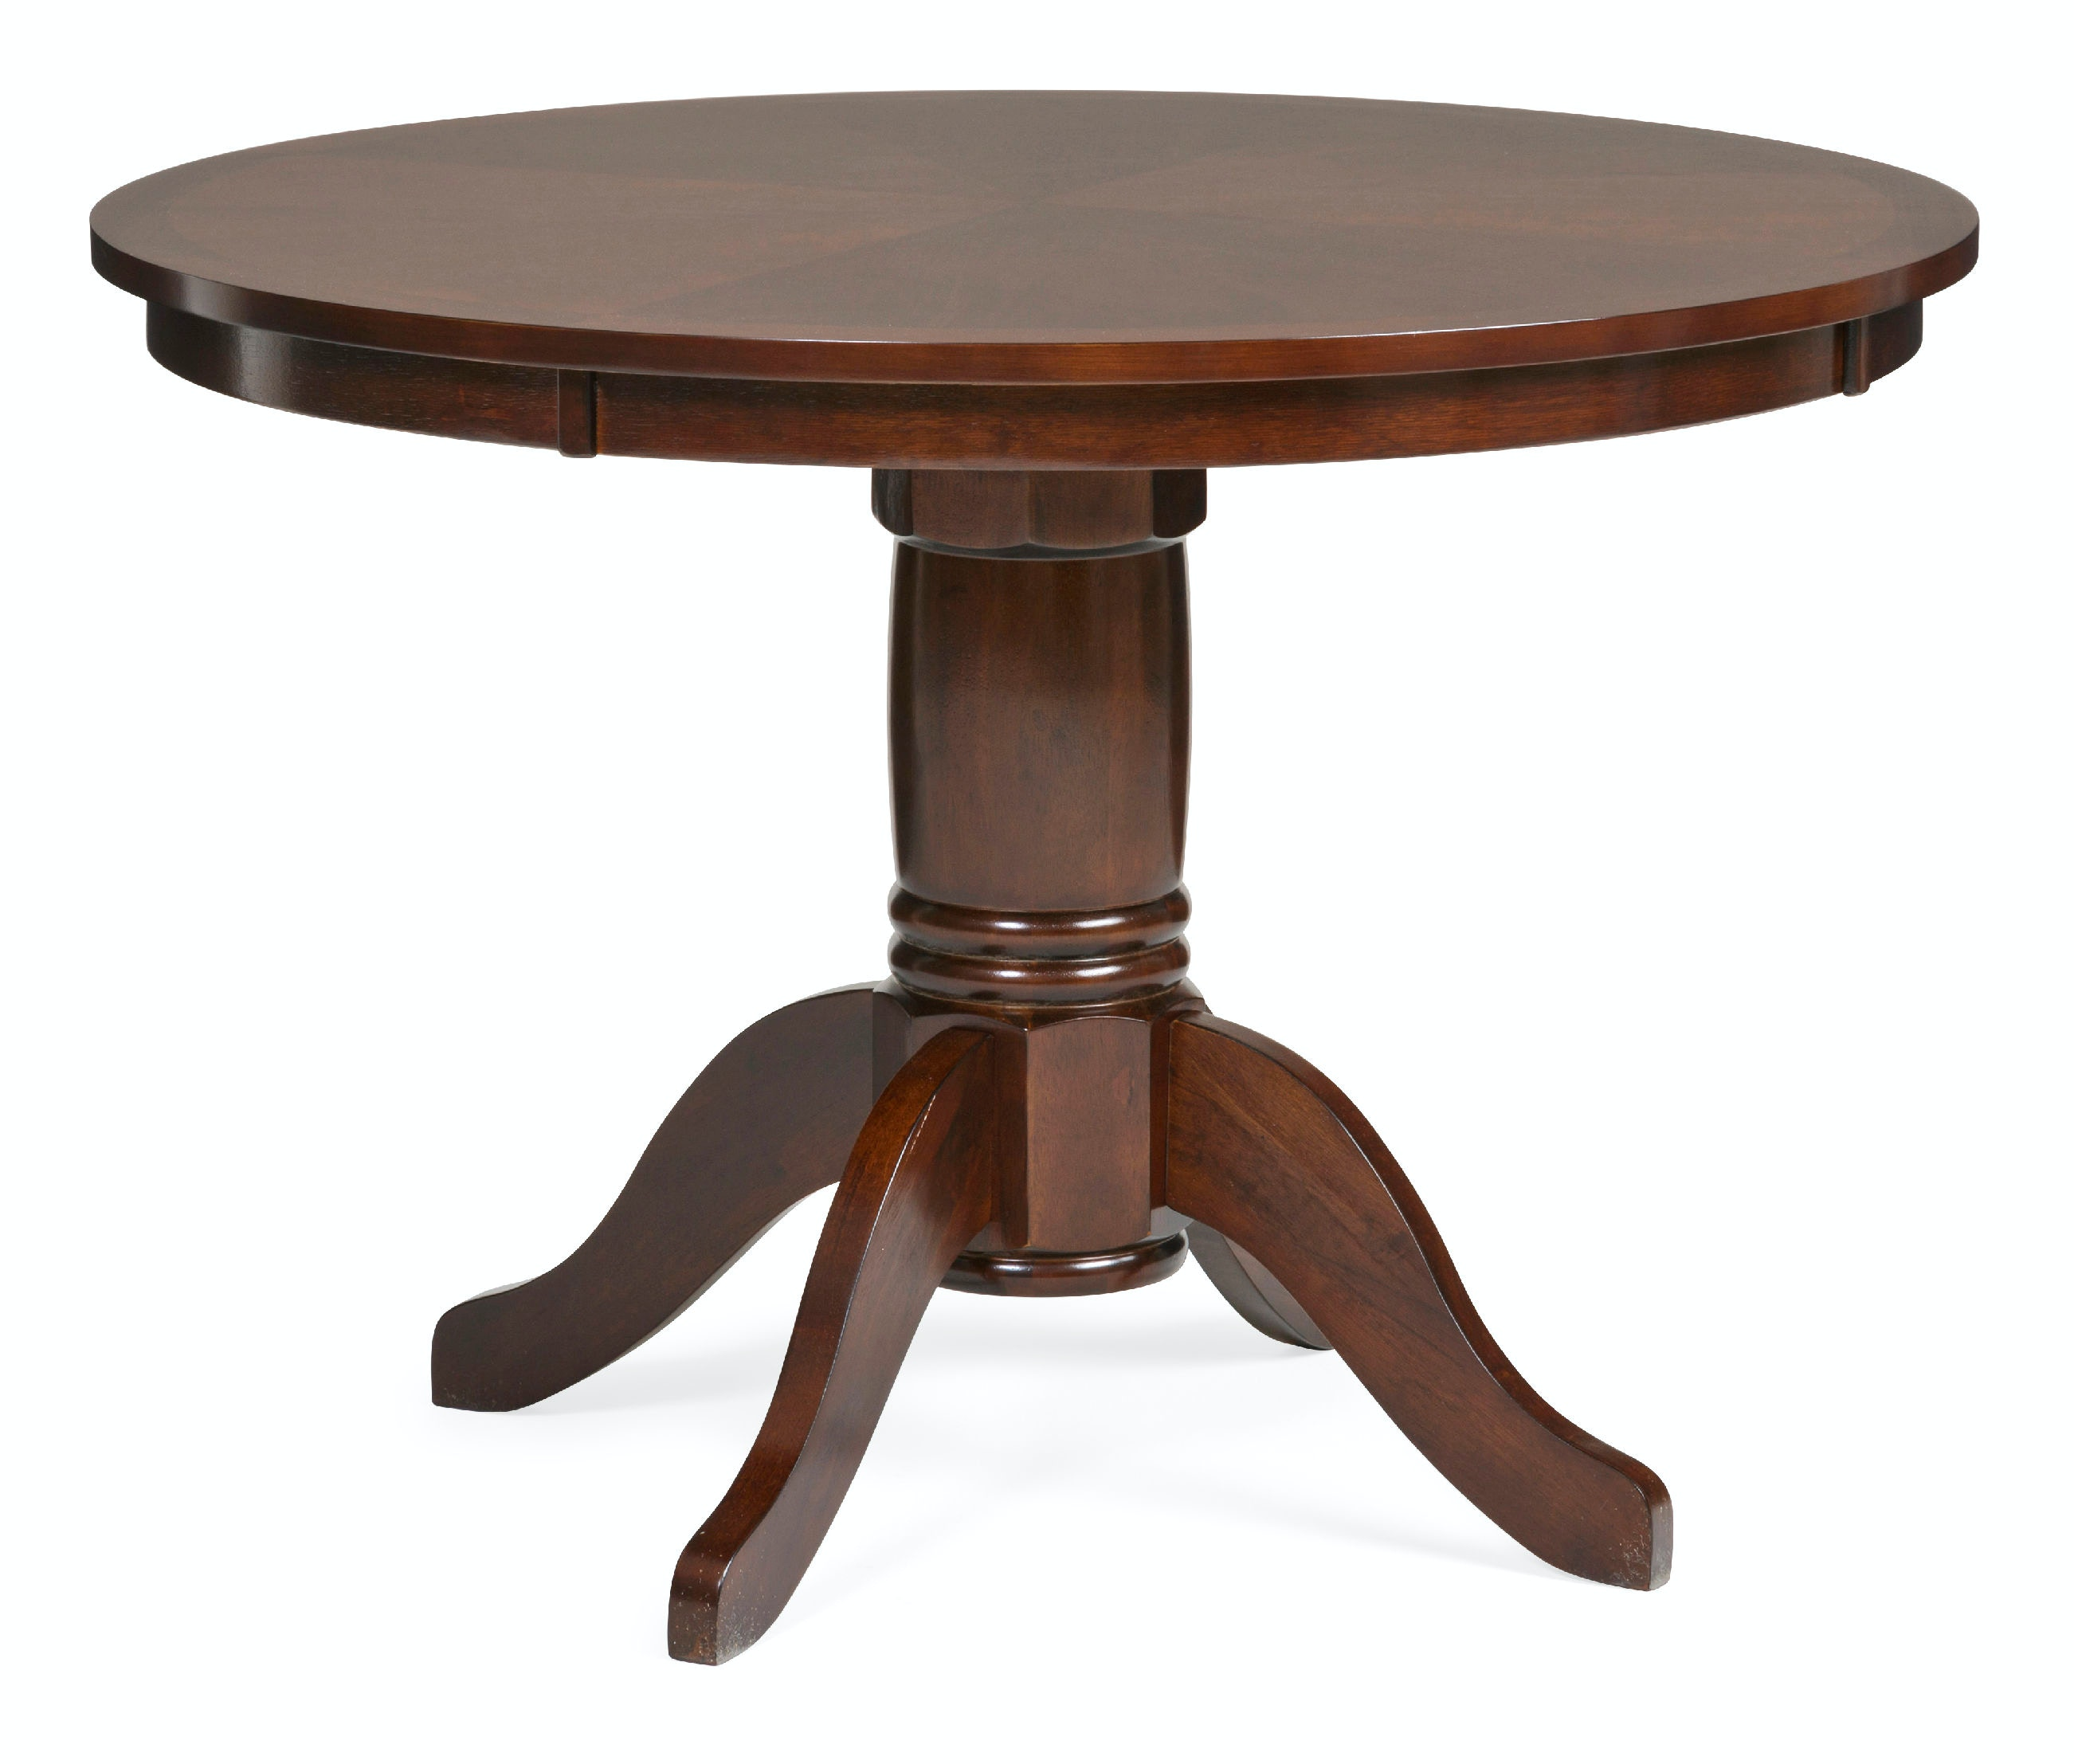 42 dining table 48 inch madera 42 round dining table espresso finish kt39156 room